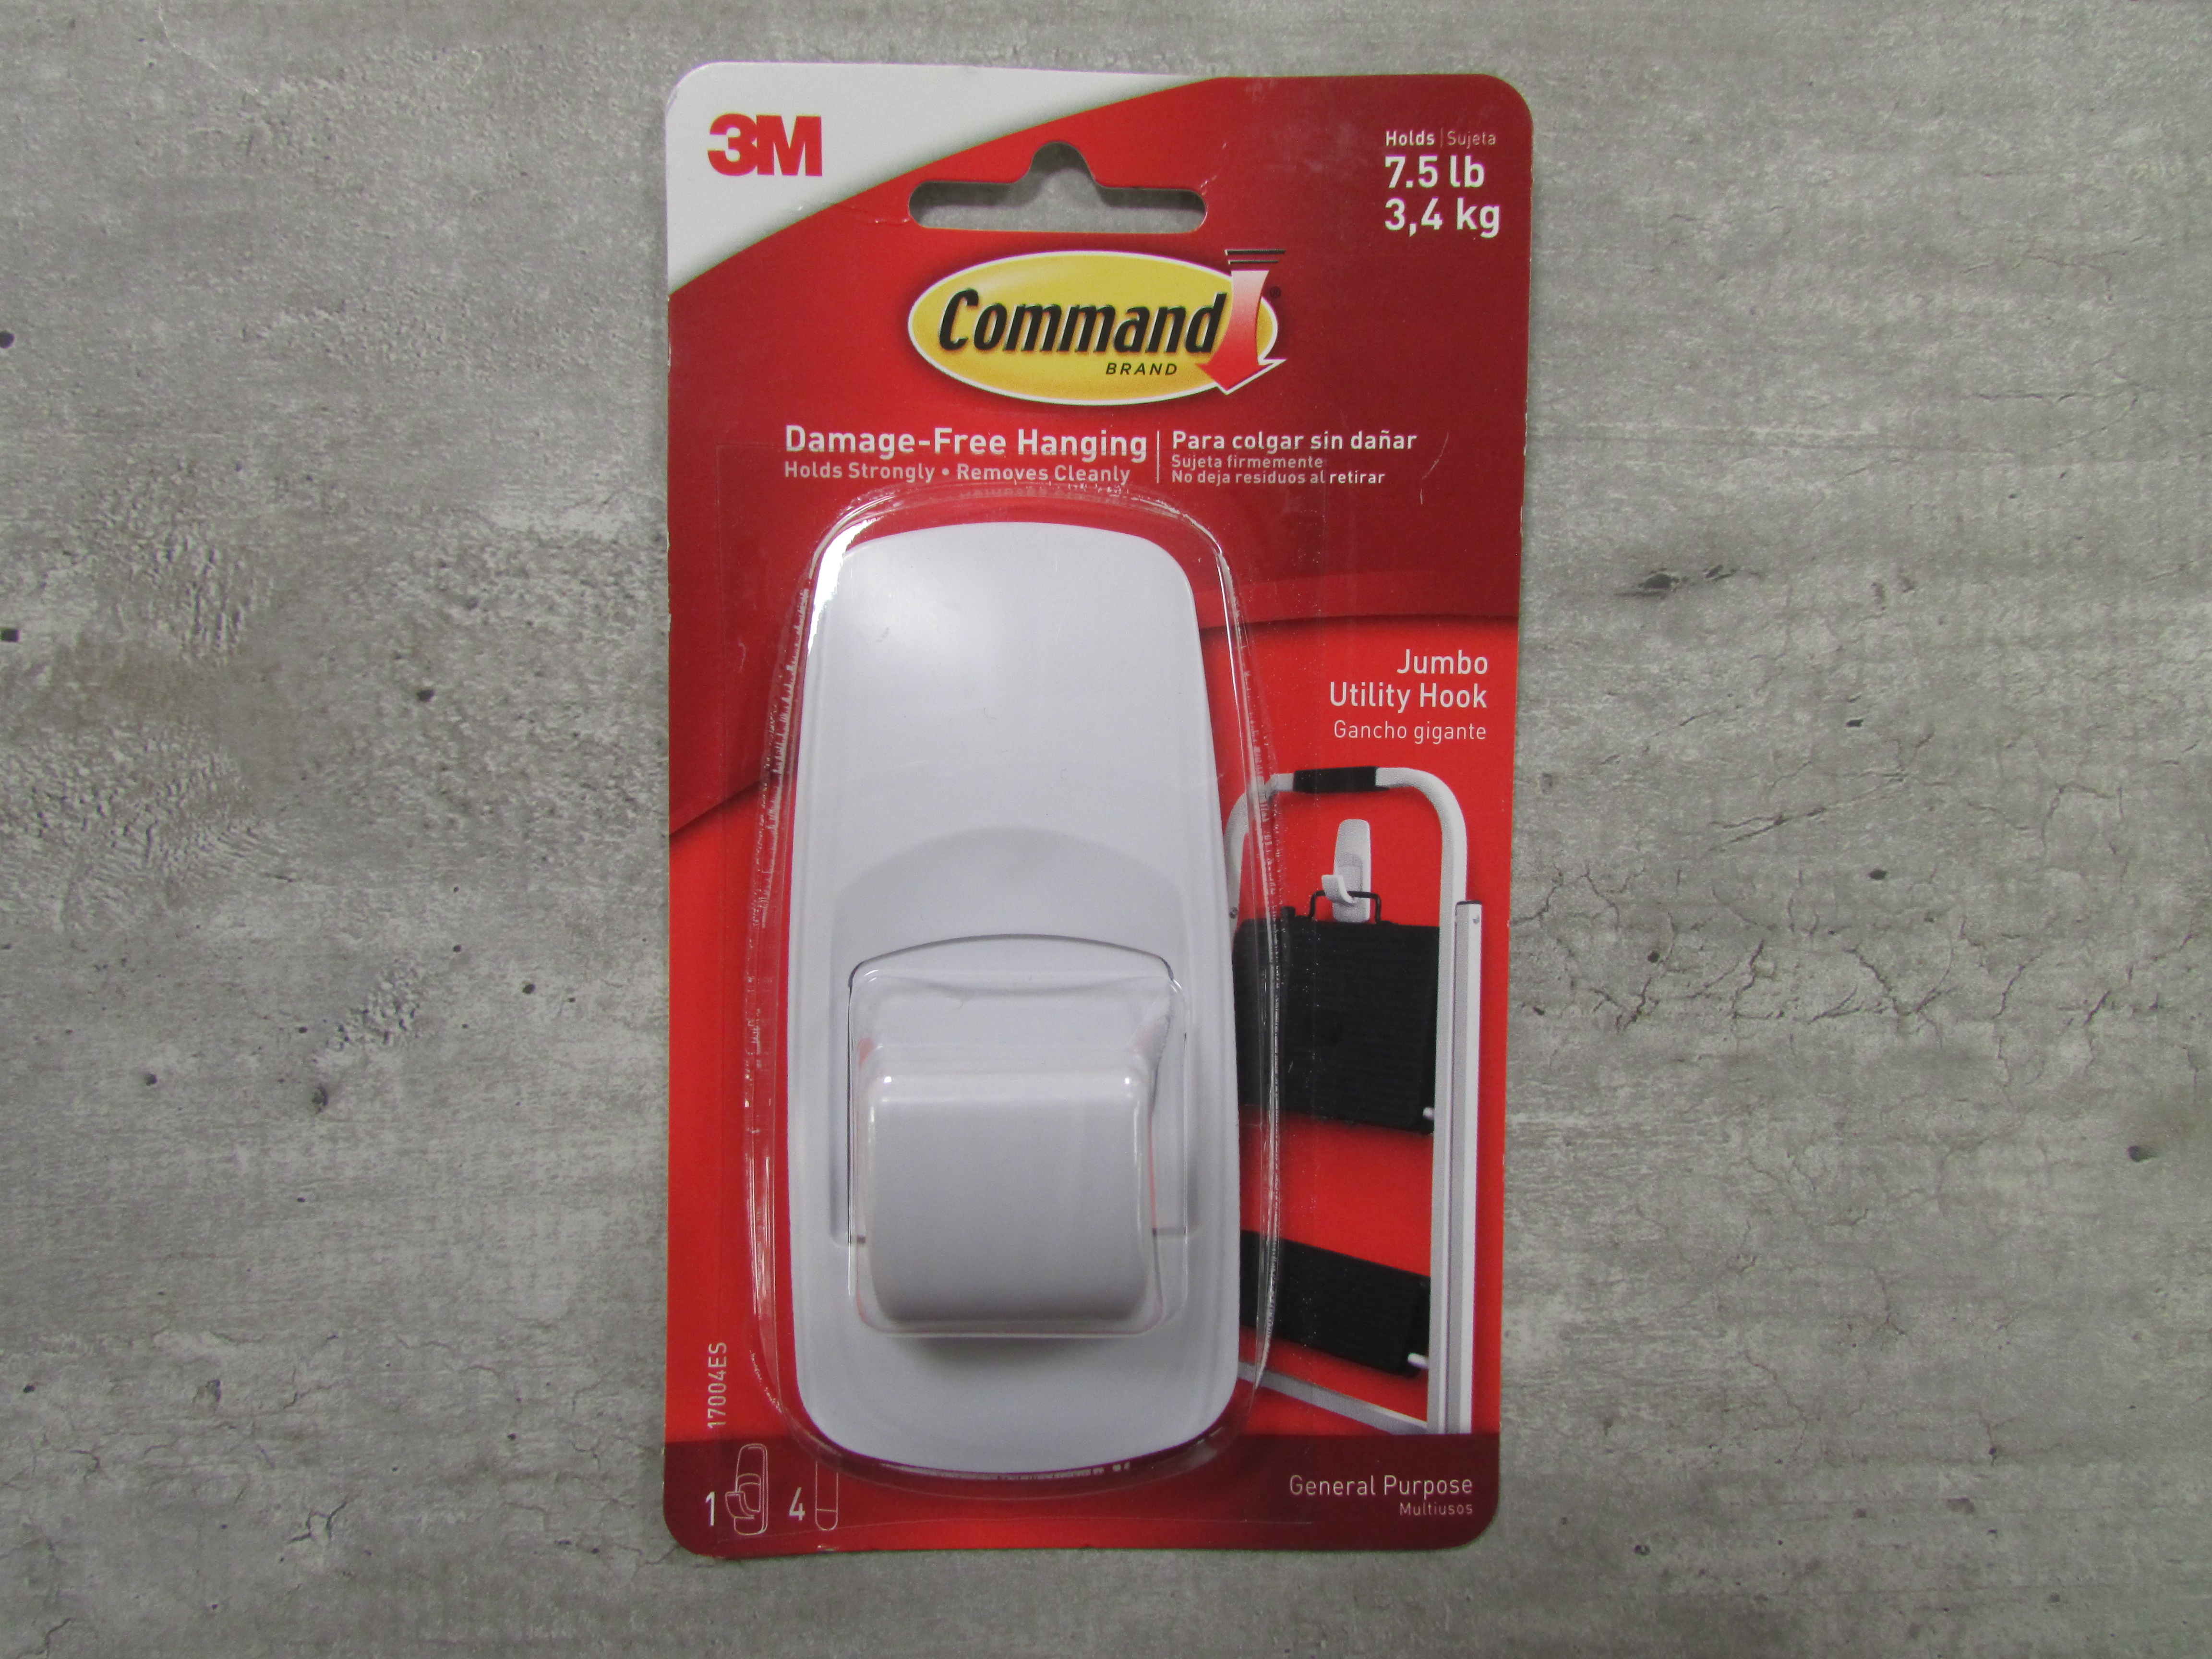 Image for the Hooks, Command, Adhesive White product